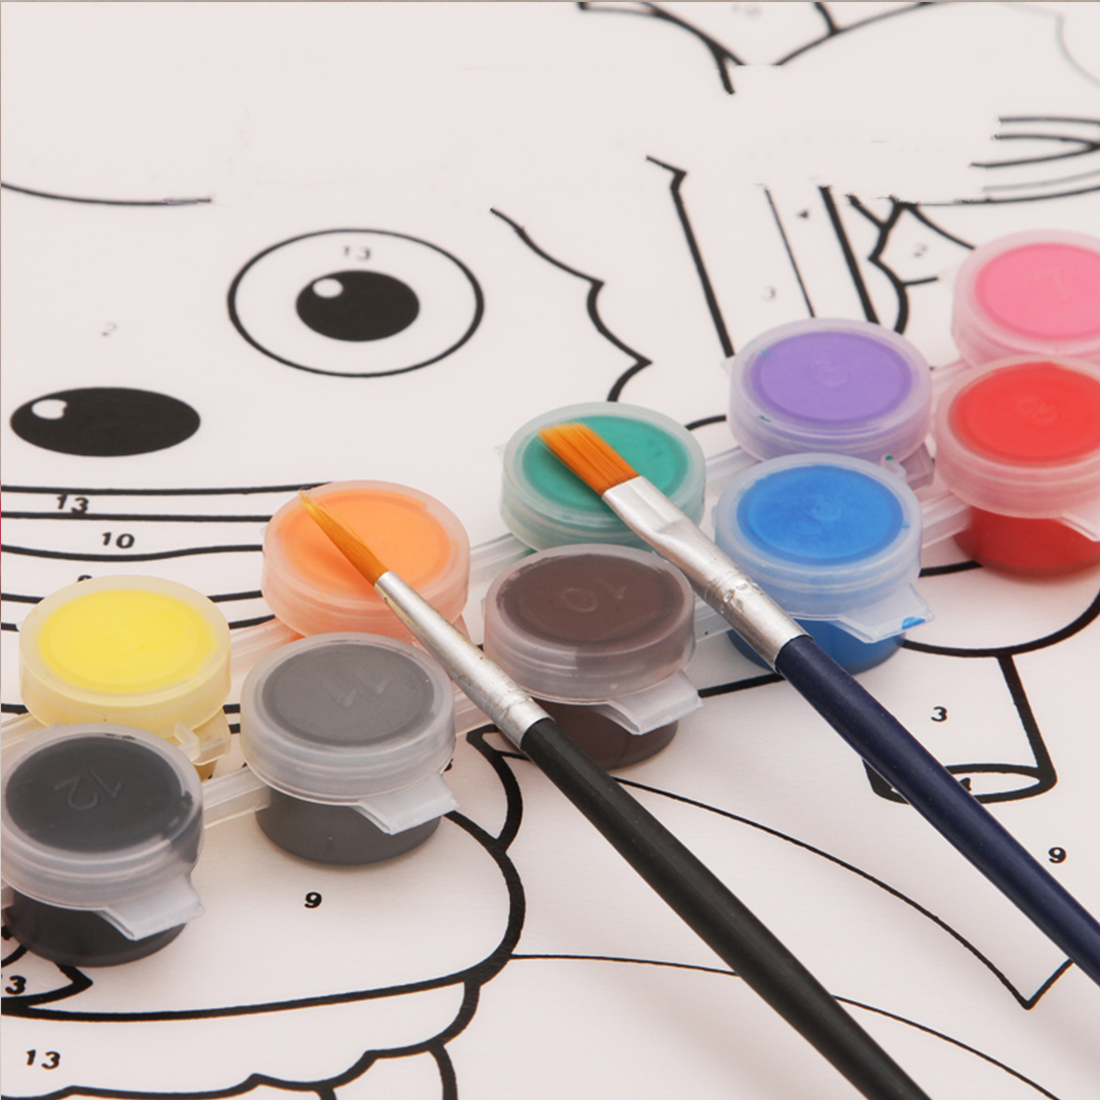 Acrylic Paints WaterBrush Pigment Set 12 Colors For Clothing Textile Fabric Hand Painted Wall Plaster Painting Drawing For Kids